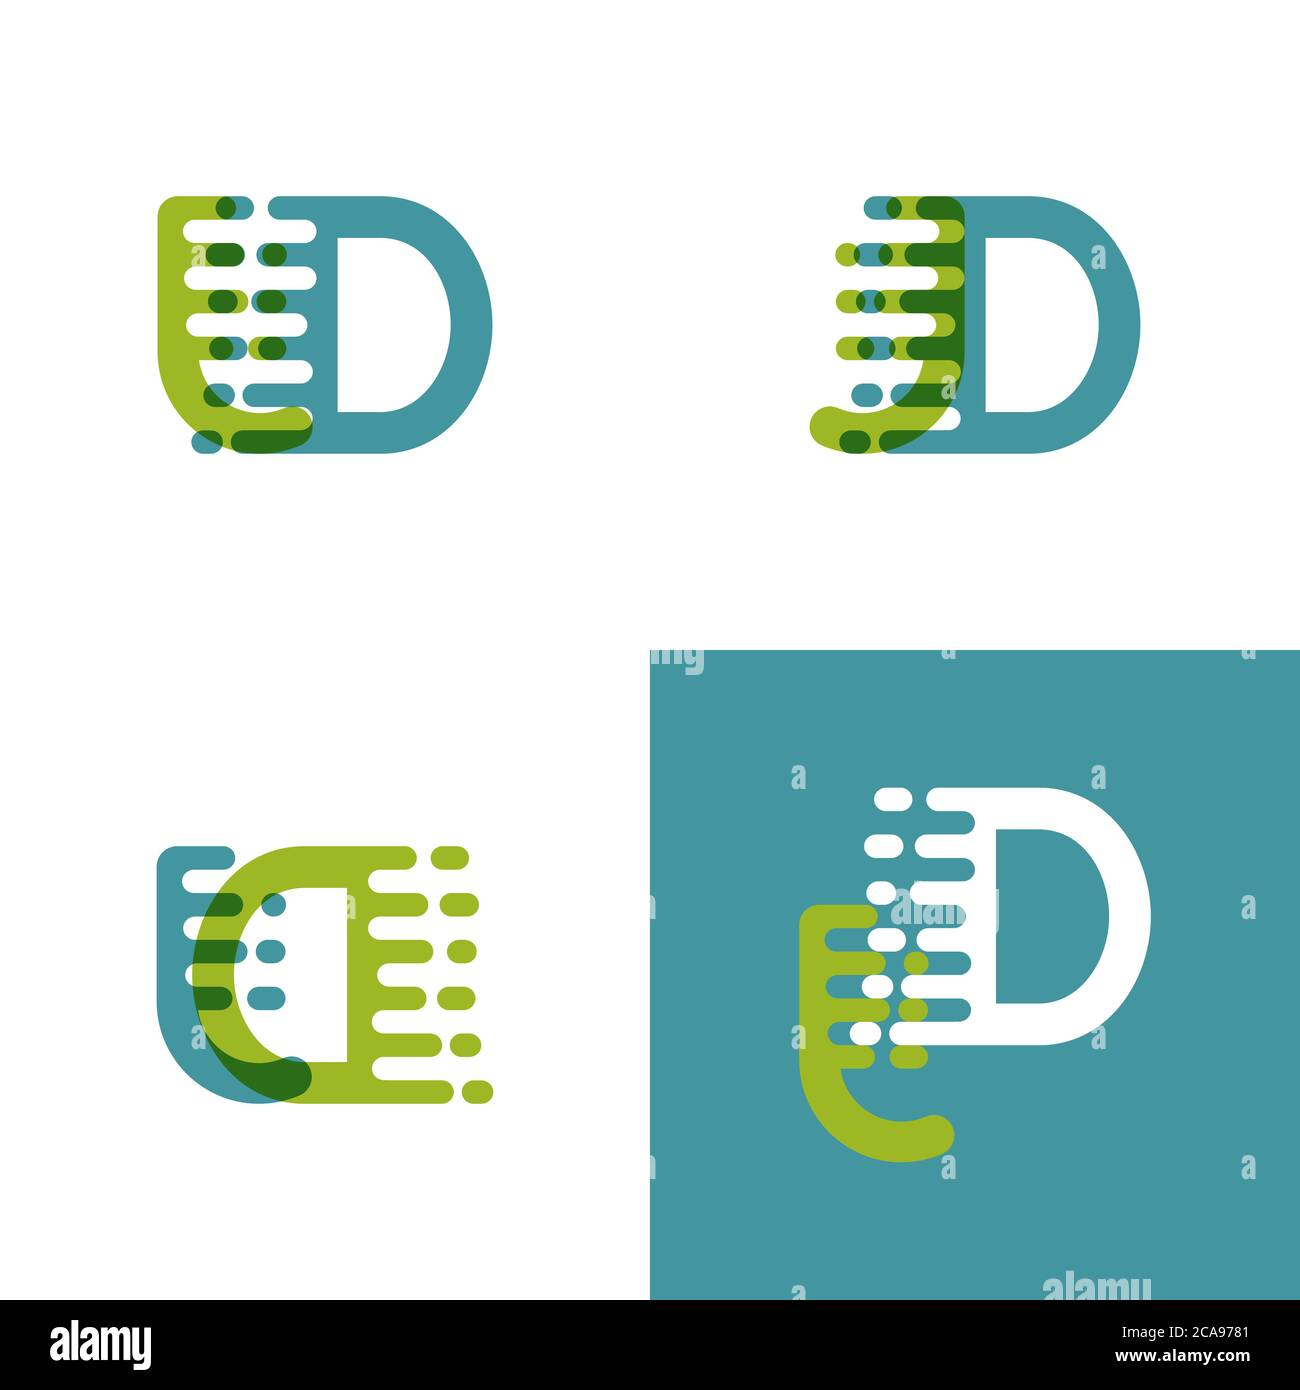 jd letters logo with accent speed in light green and light blue stock vector image art alamy alamy